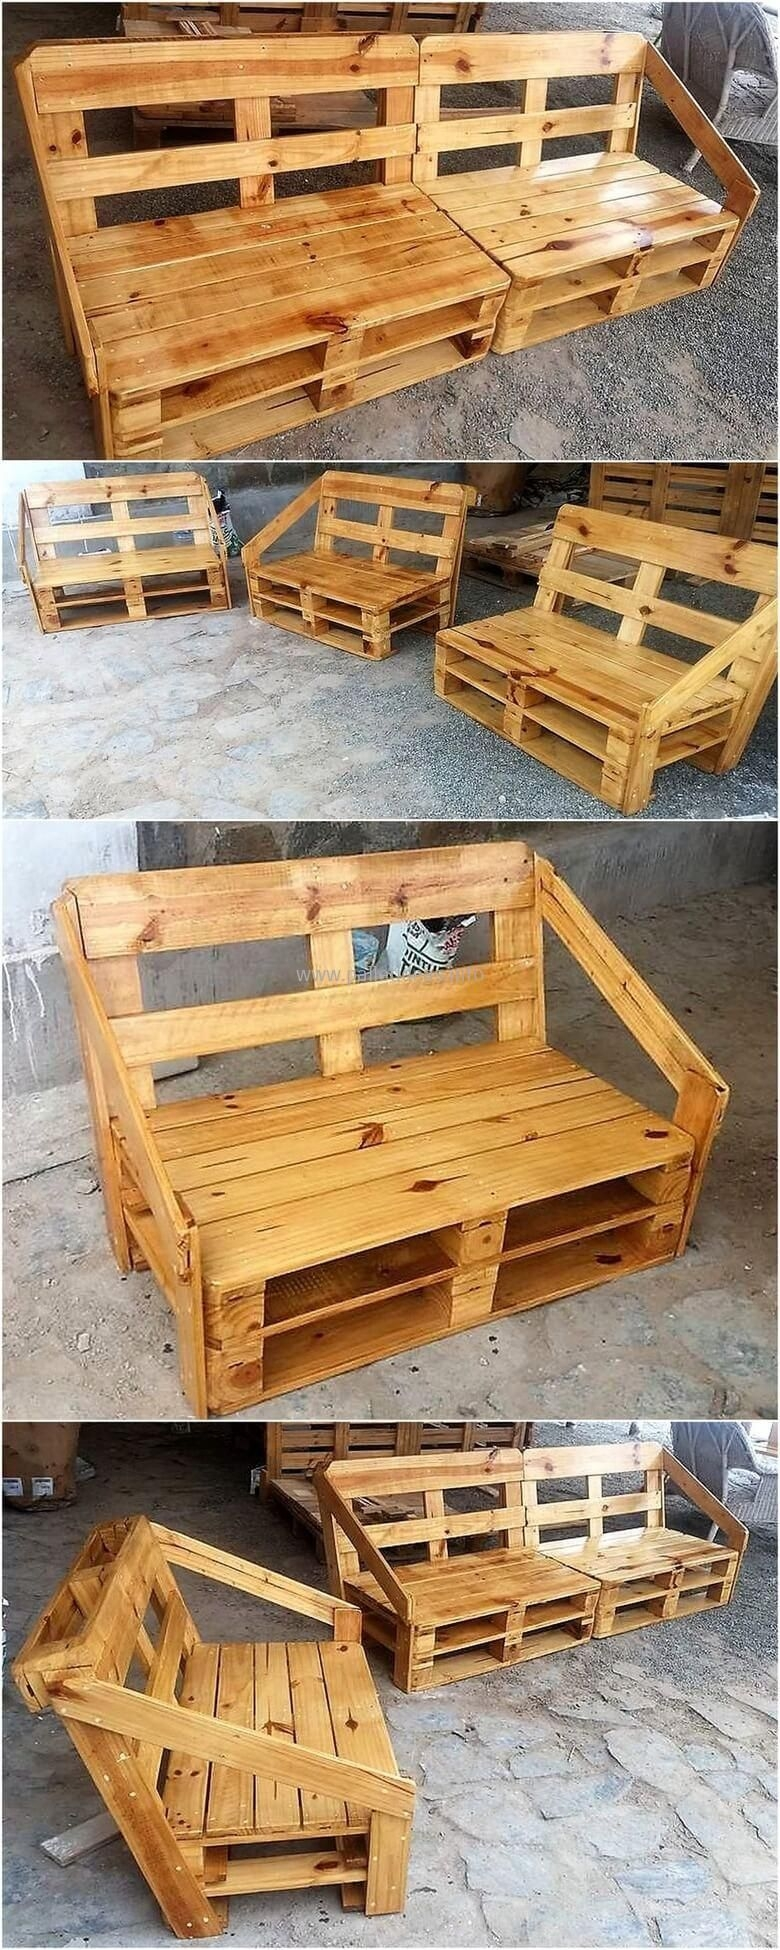 recycled pallet furniture crates pallets recycled